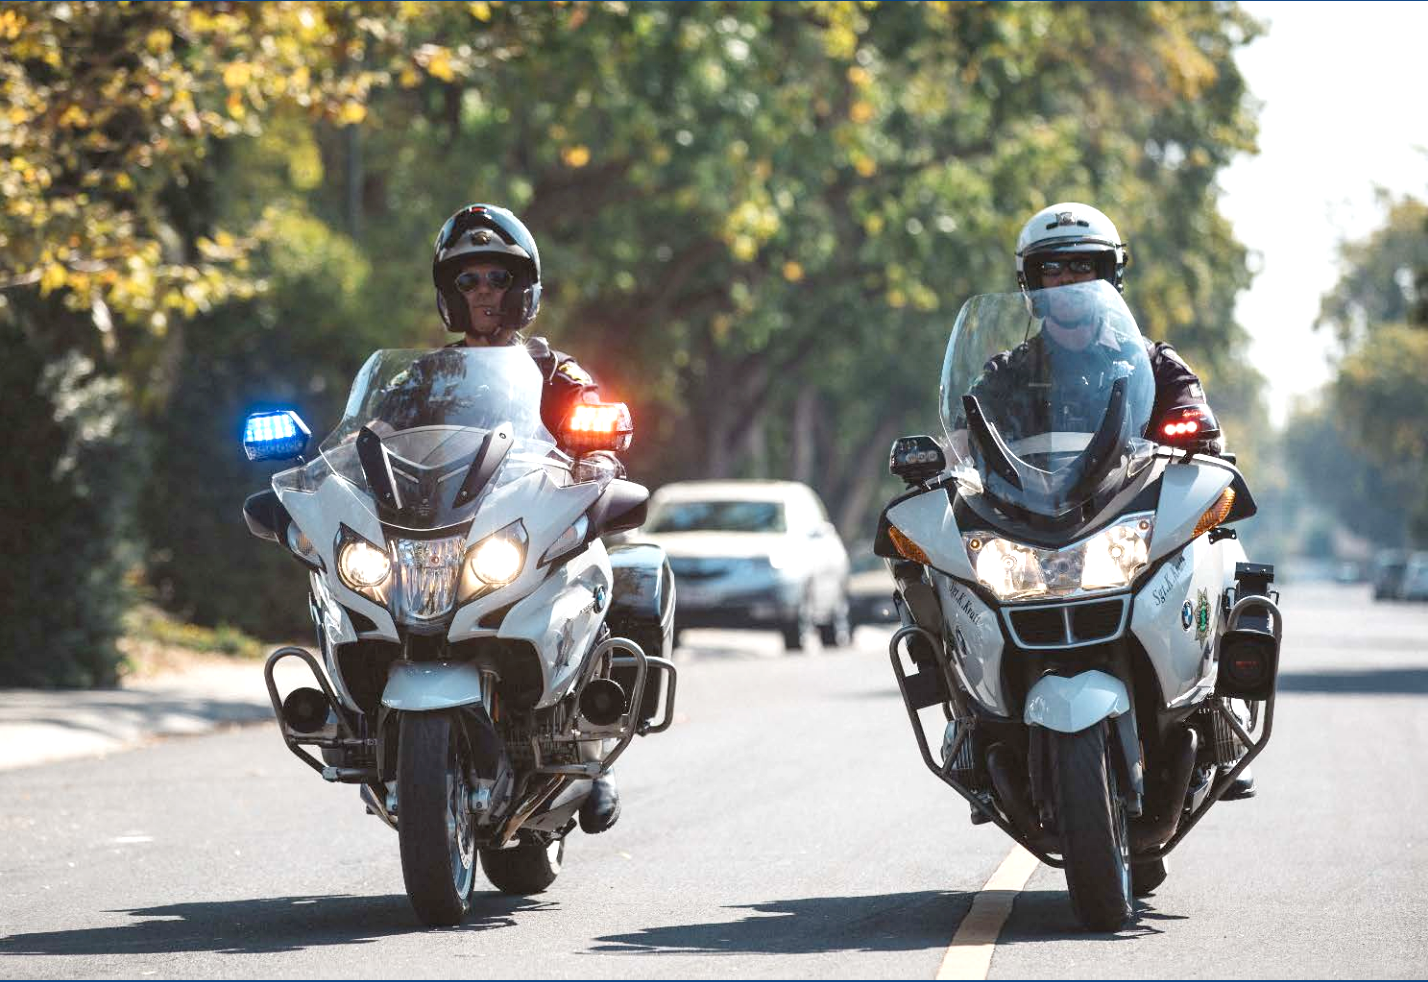 Police are writing more tickets - Palo Alto Daily Post